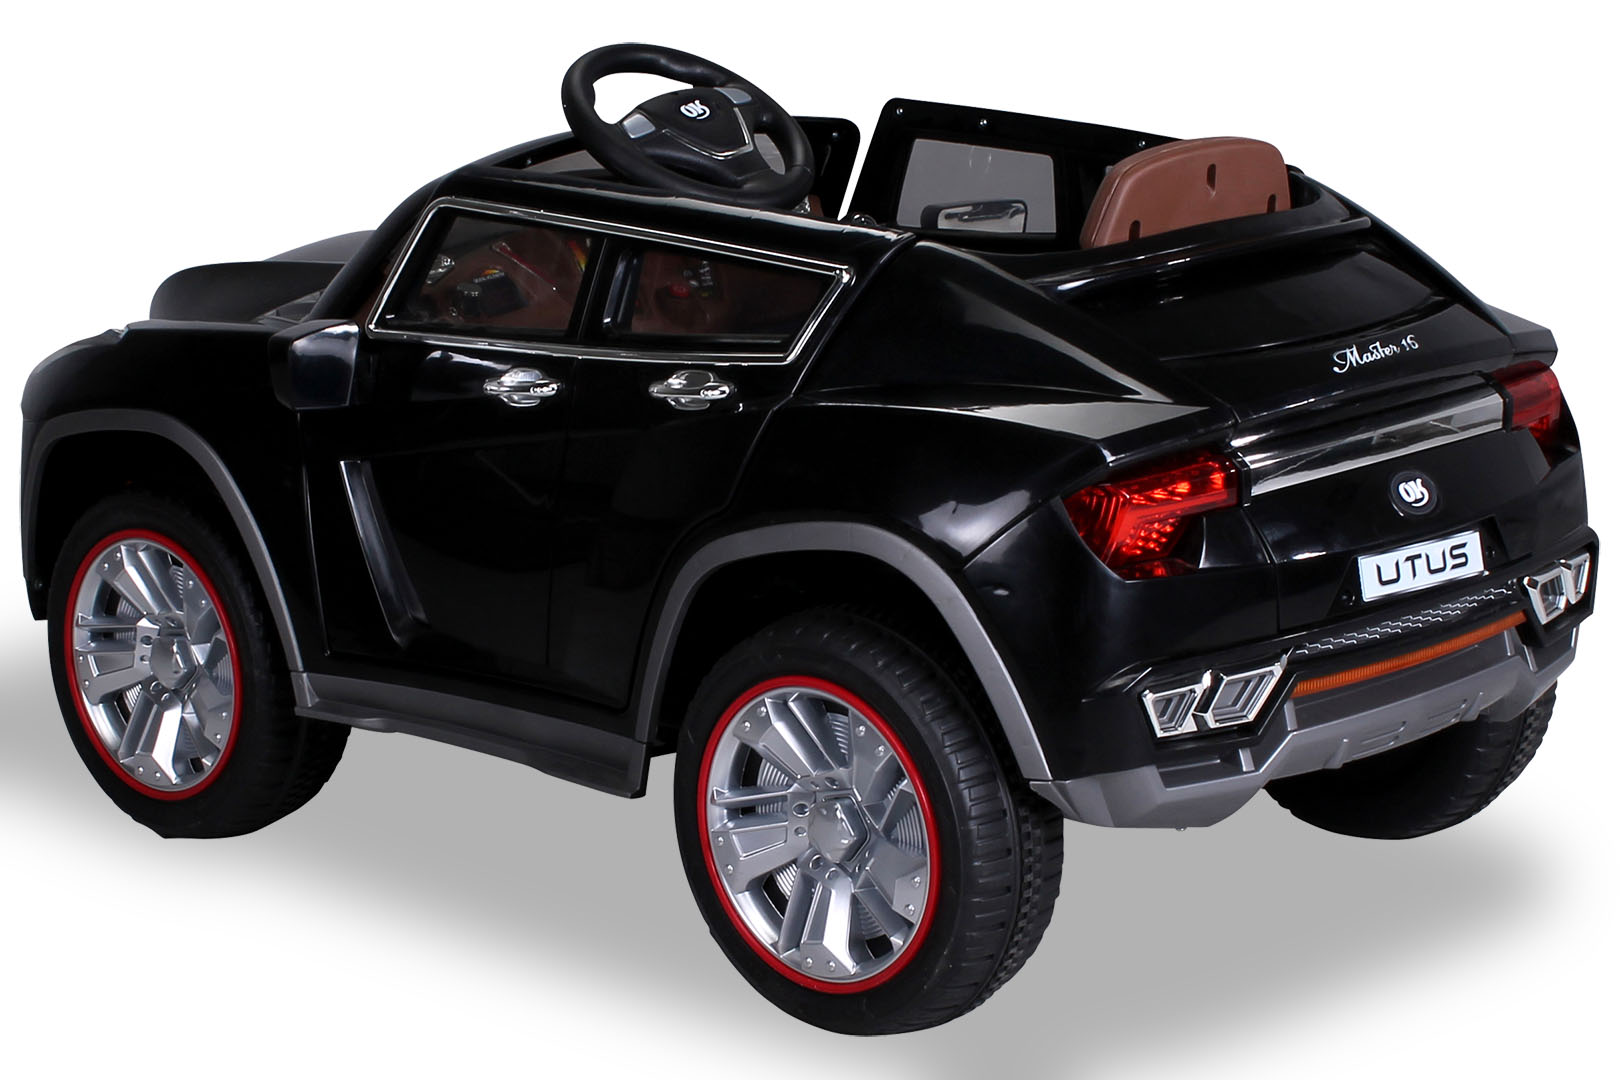 kinder elektroauto lambo utus288 kinderauto kinderfahrzeug. Black Bedroom Furniture Sets. Home Design Ideas